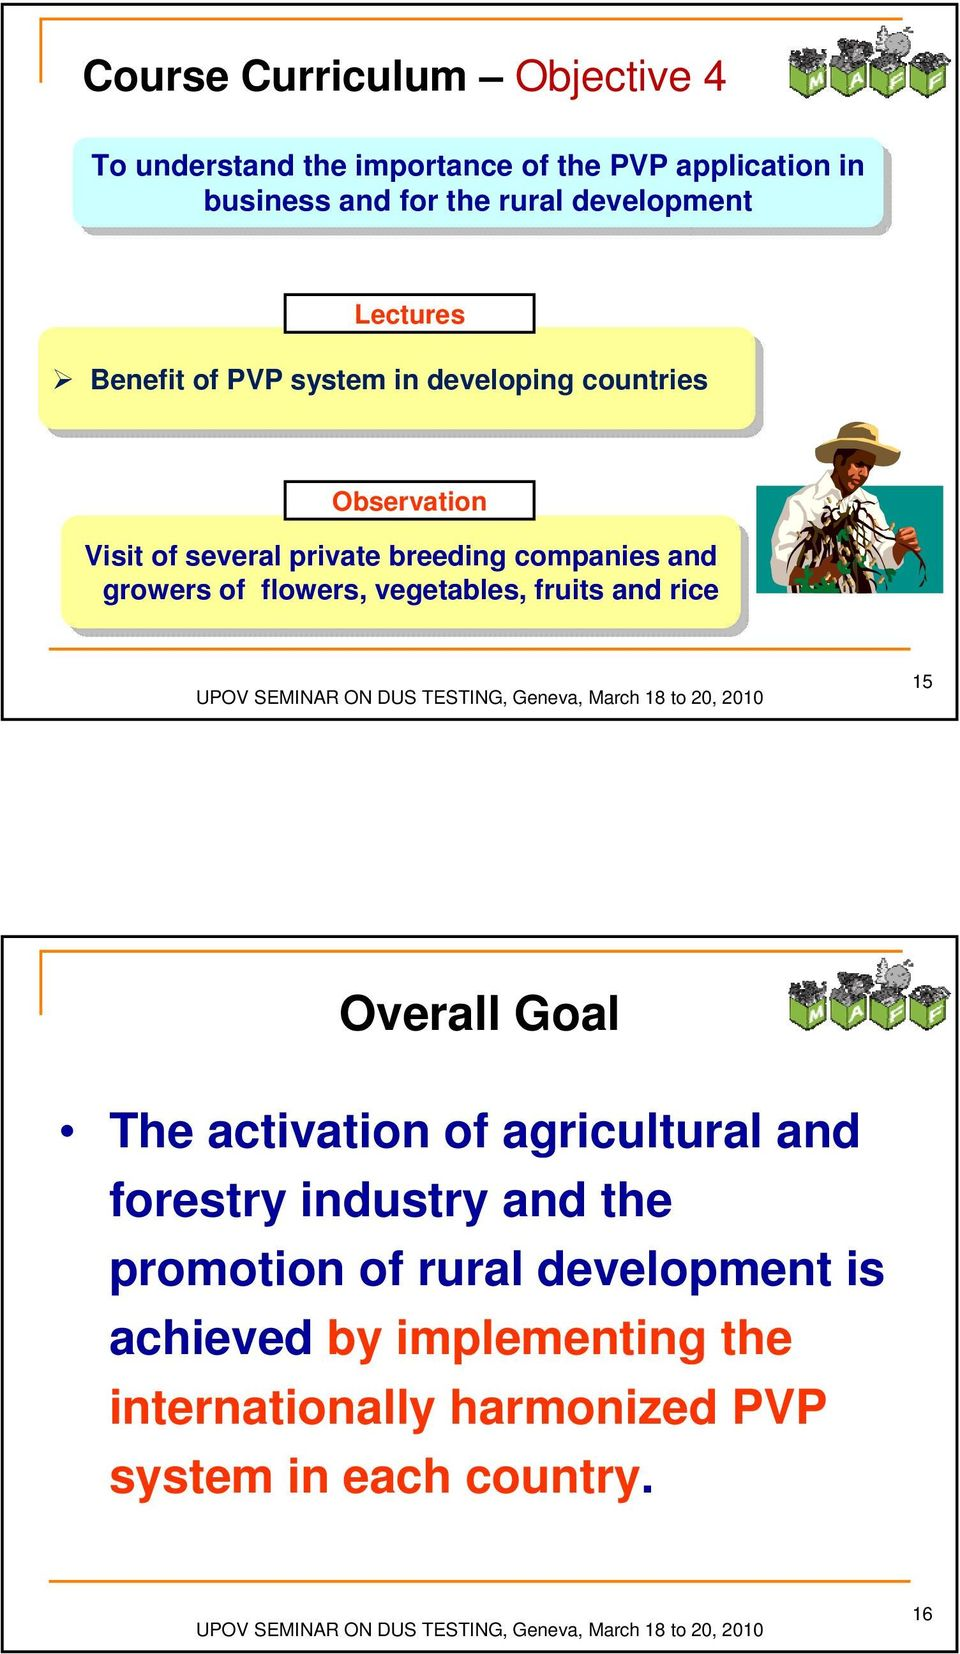 companies and and growers of of flowers, vegetables, fruits and and rice rice 15 Overall Goal The activation of agricultural and